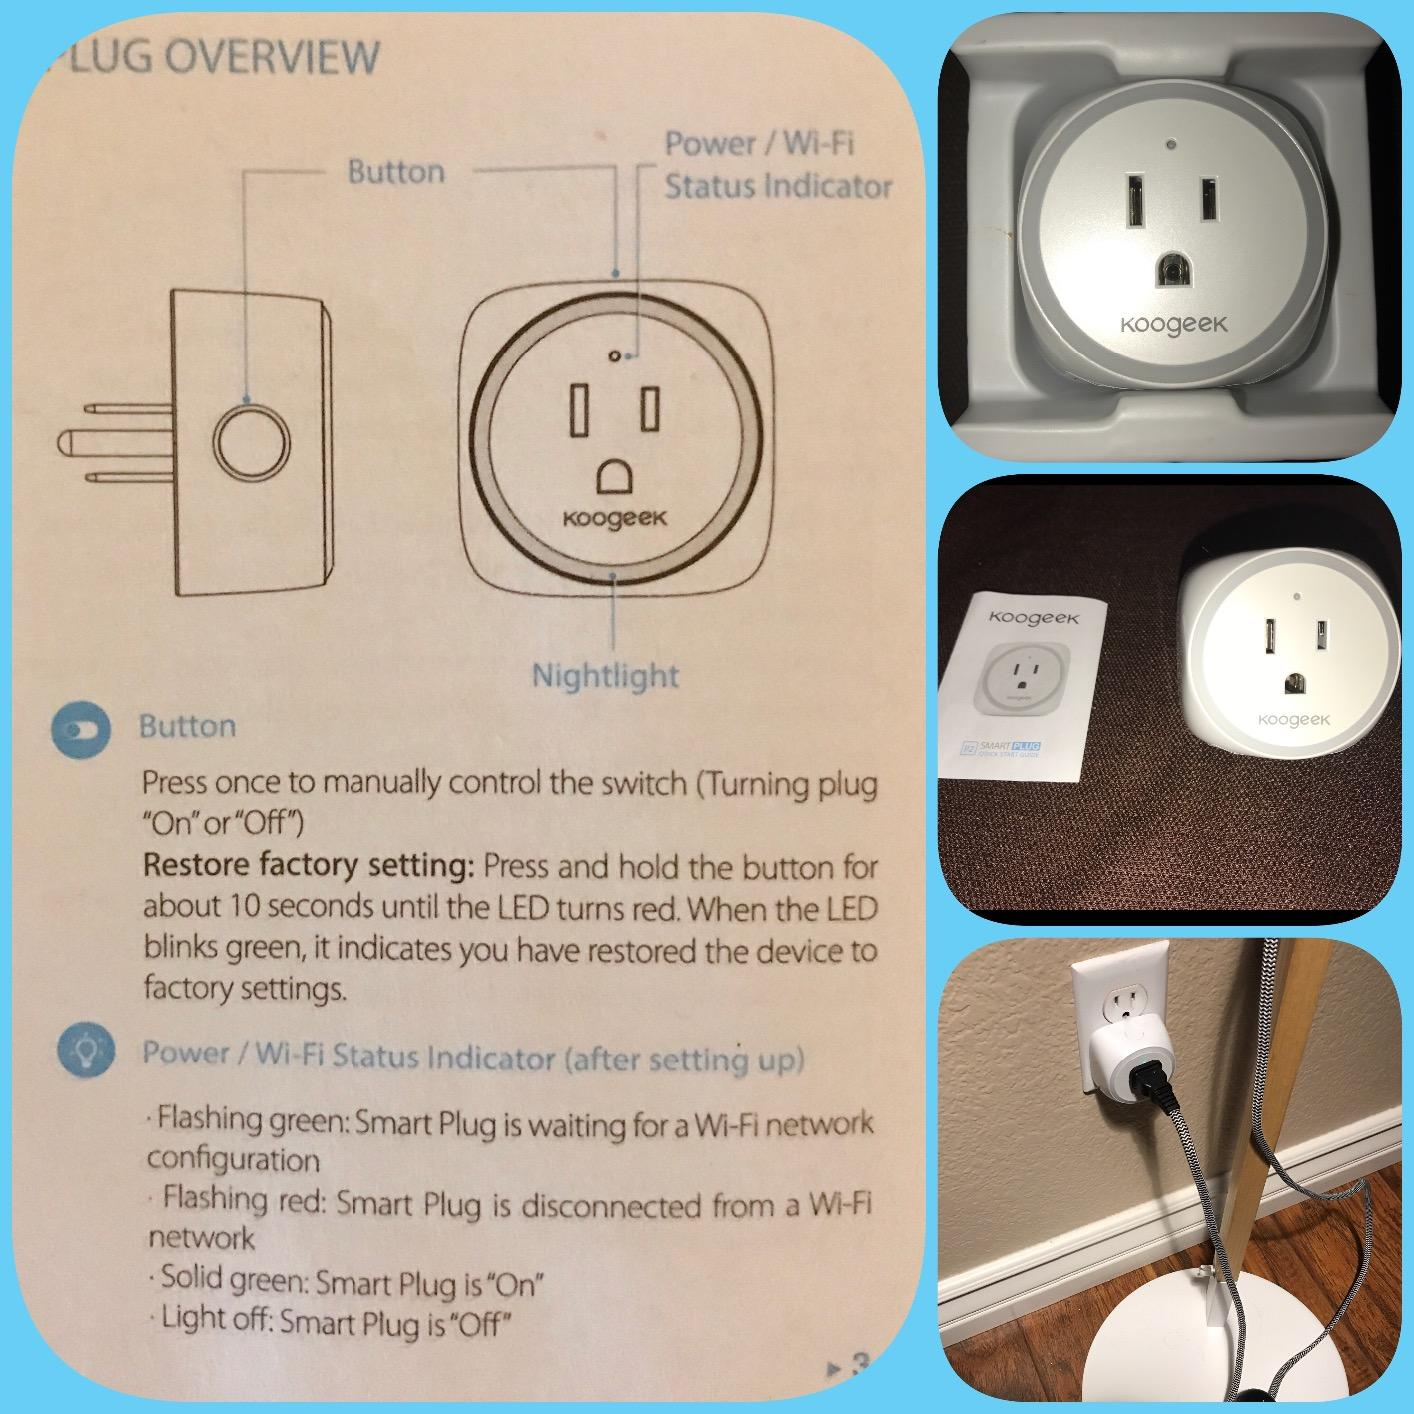 Koogeek Wi Fi Enabled Improved Smart Plug For Apple Homekit And Can You Hook Up A Single Pole Dimmer Switch To Three Way Kill They Work With Each Other As Accessories All On The Home App 5 Stars Great Little Product 2 In 1 Dimmable Nightlight